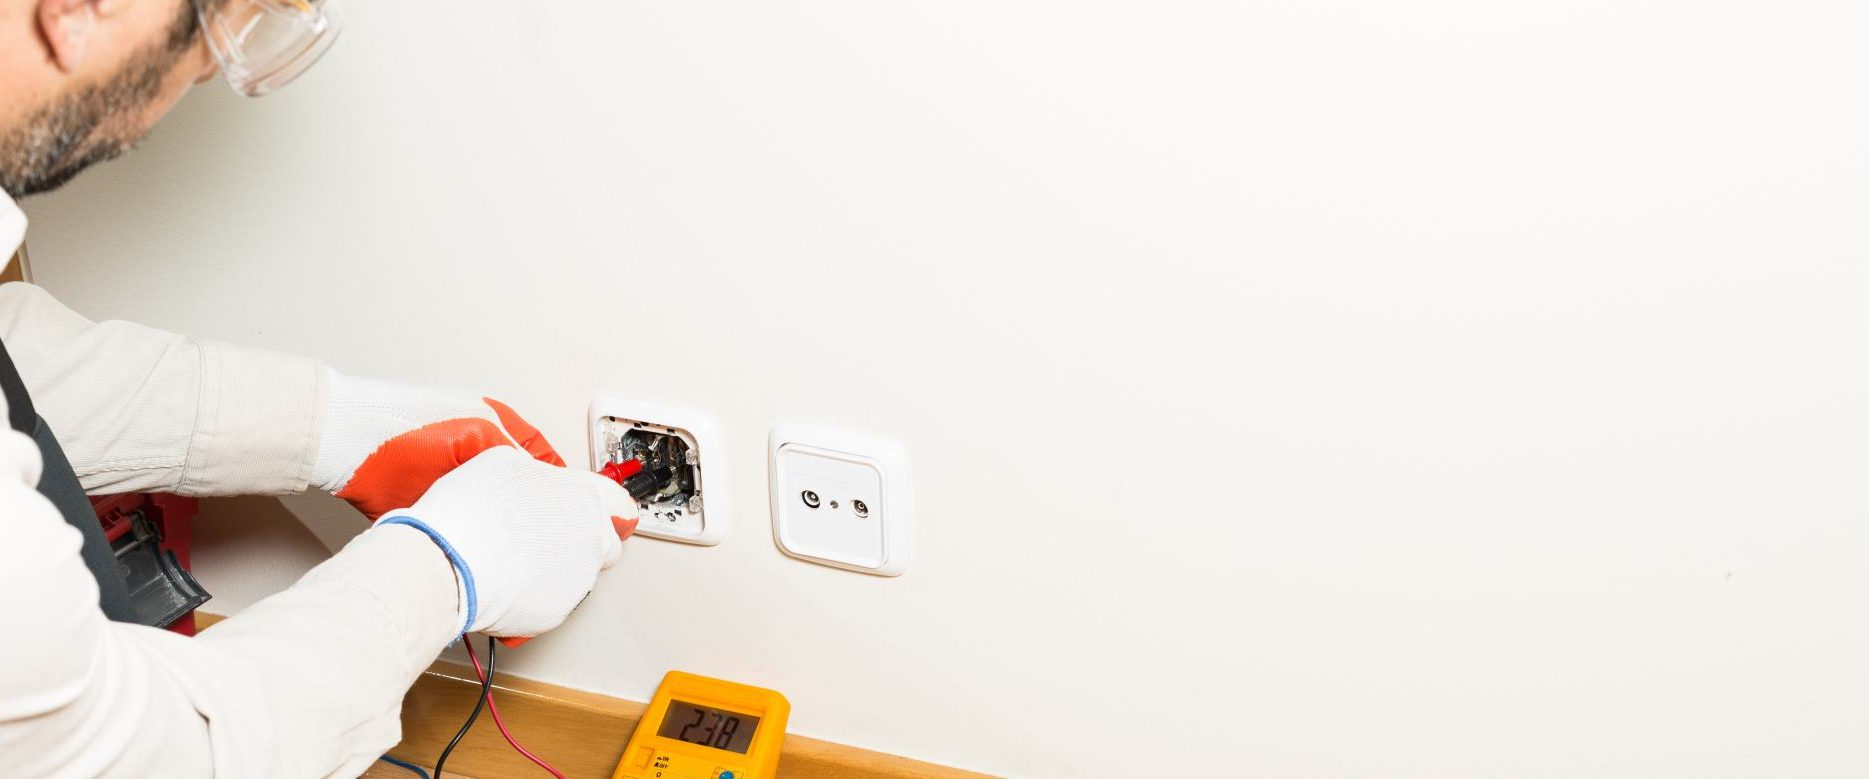 Zephyr Electrical technician repairing an electrical socket